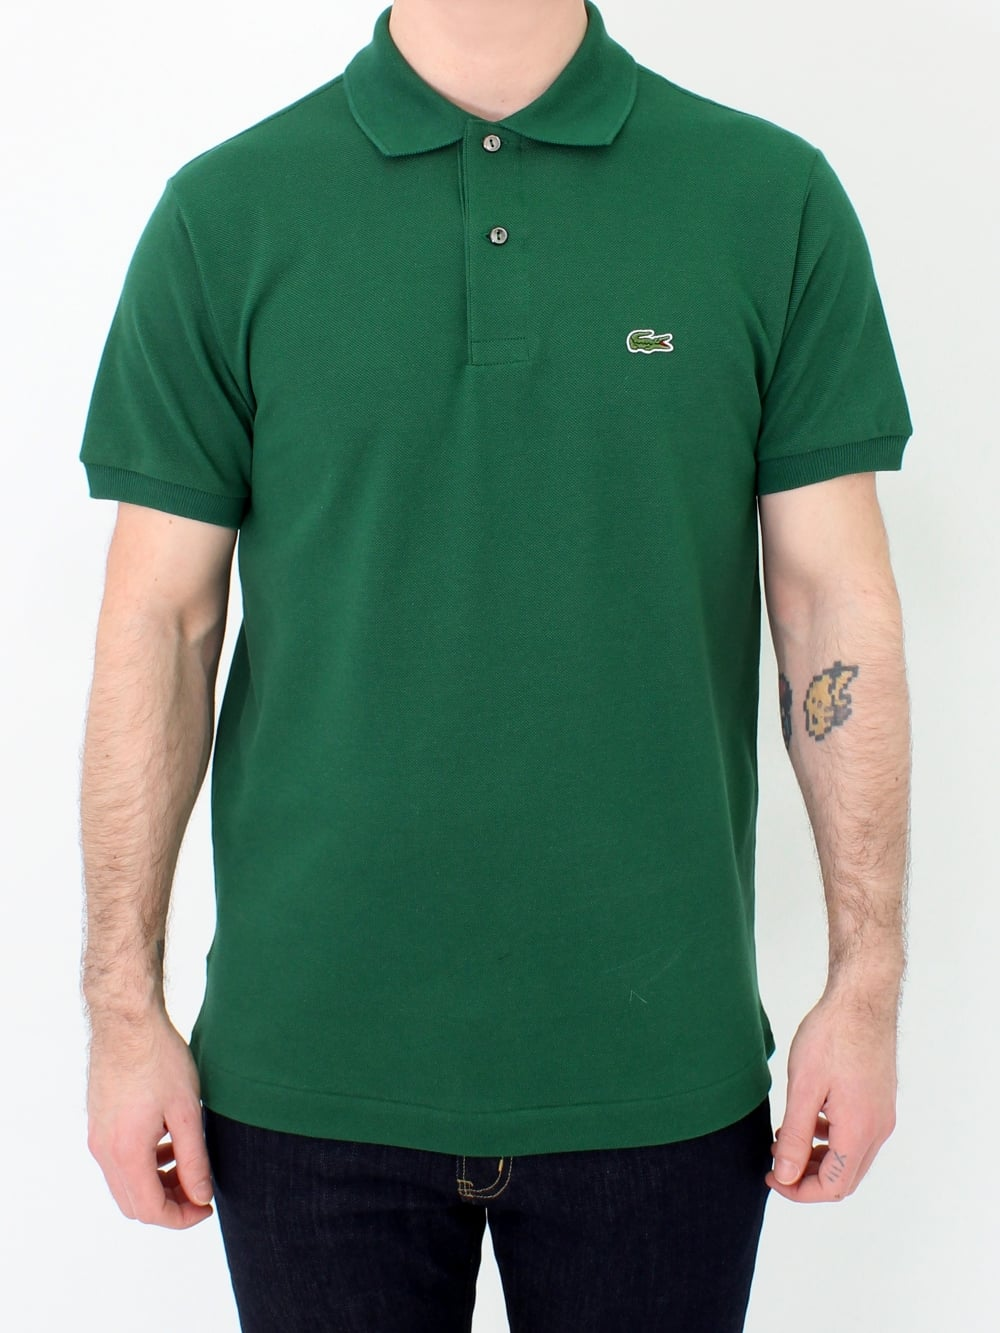 bc746d91cb Lacoste L1212 Classic Polo in Green